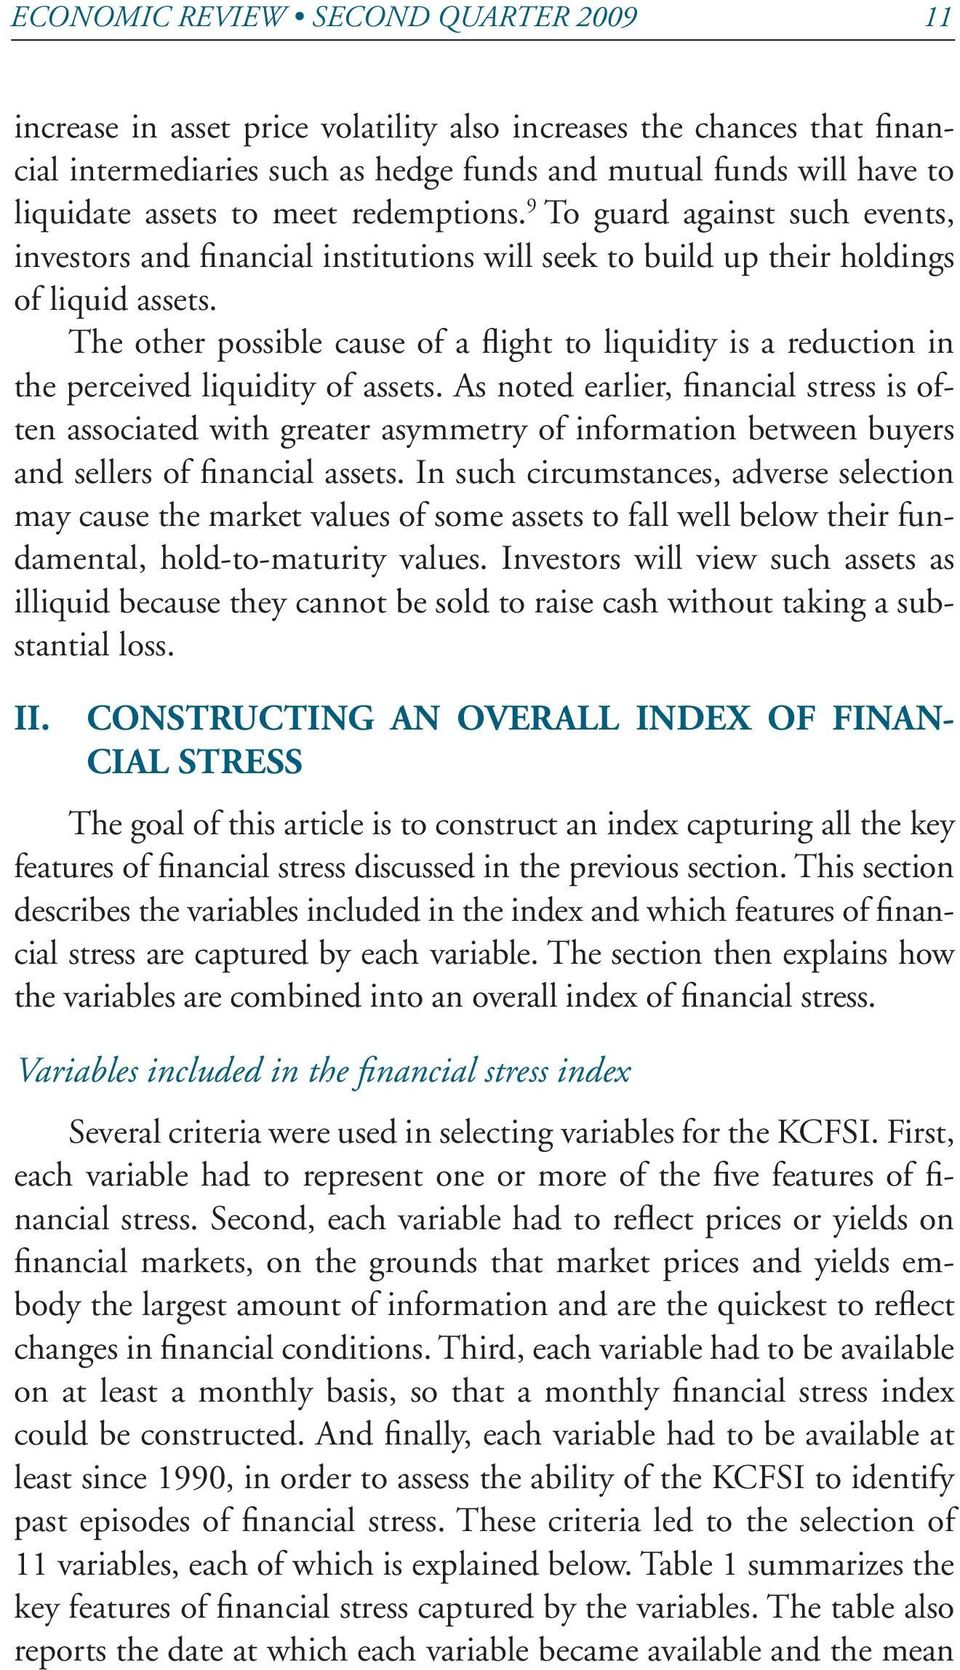 The other possible cause of a flight to liquidity is a reduction in the perceived liquidity of assets.